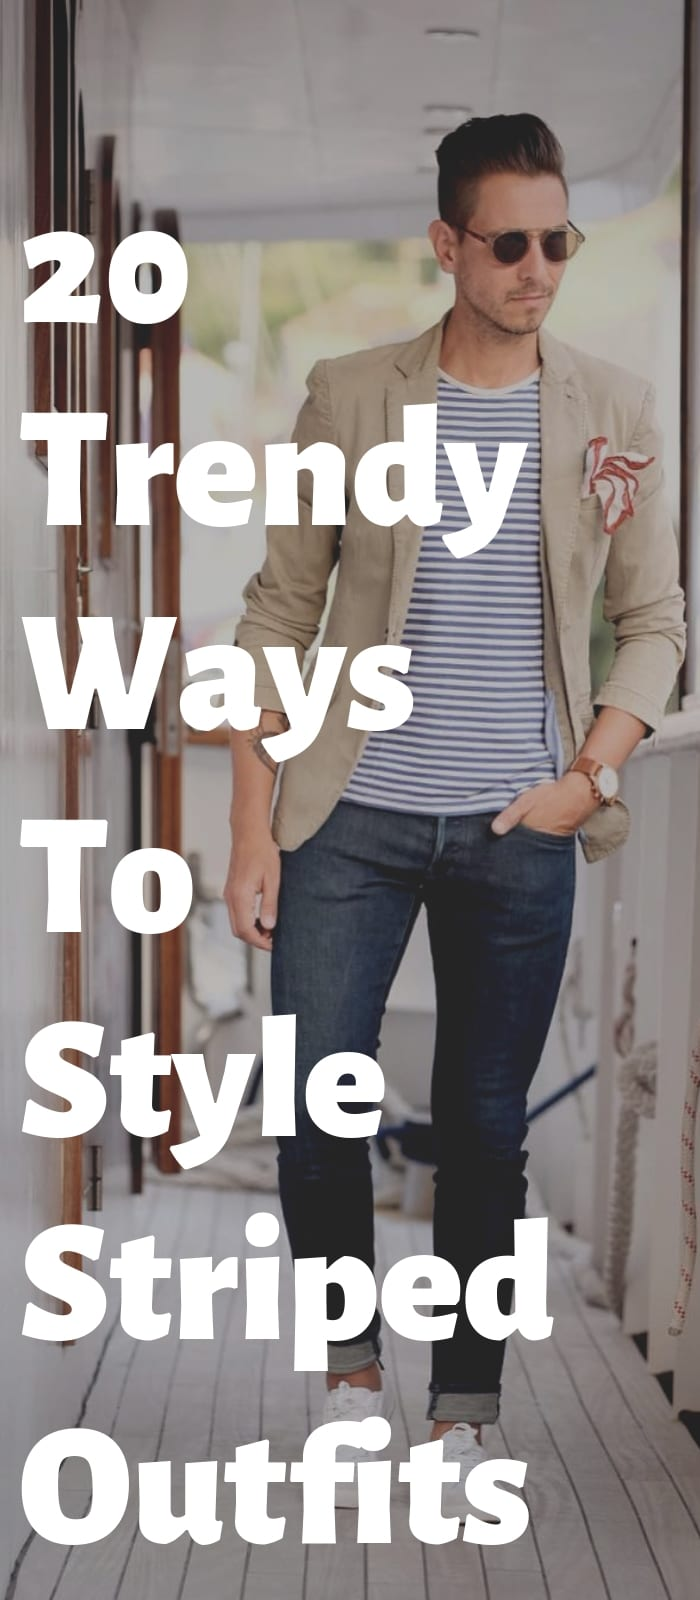 20 Trendy Ways To Style Striped Outfits